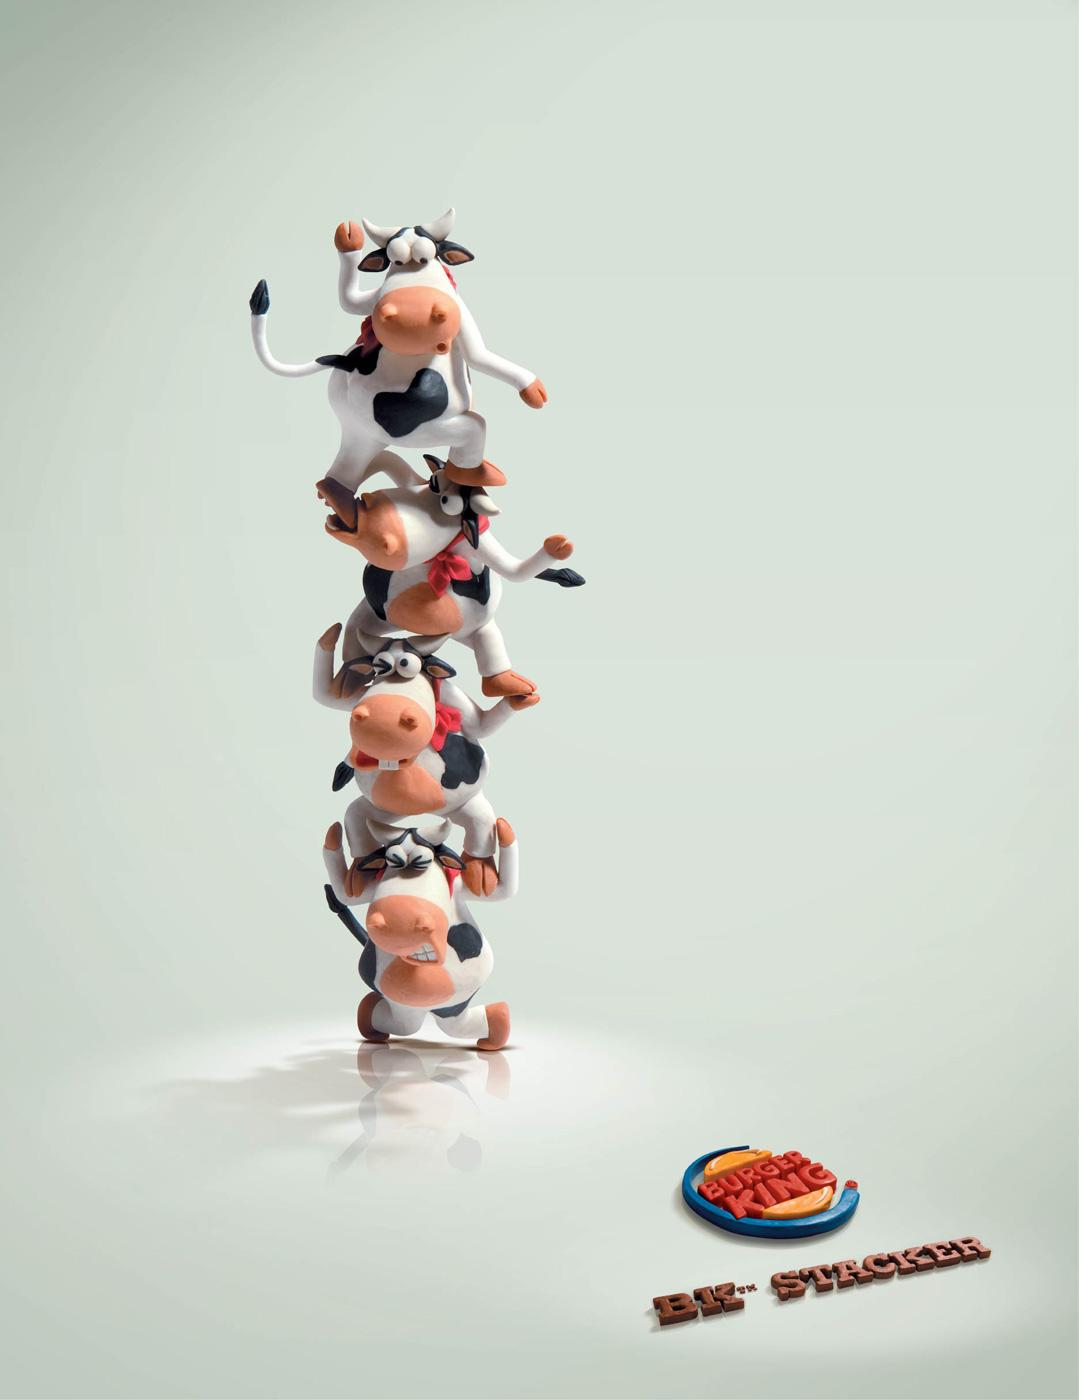 Clever Ads #3: Burger King